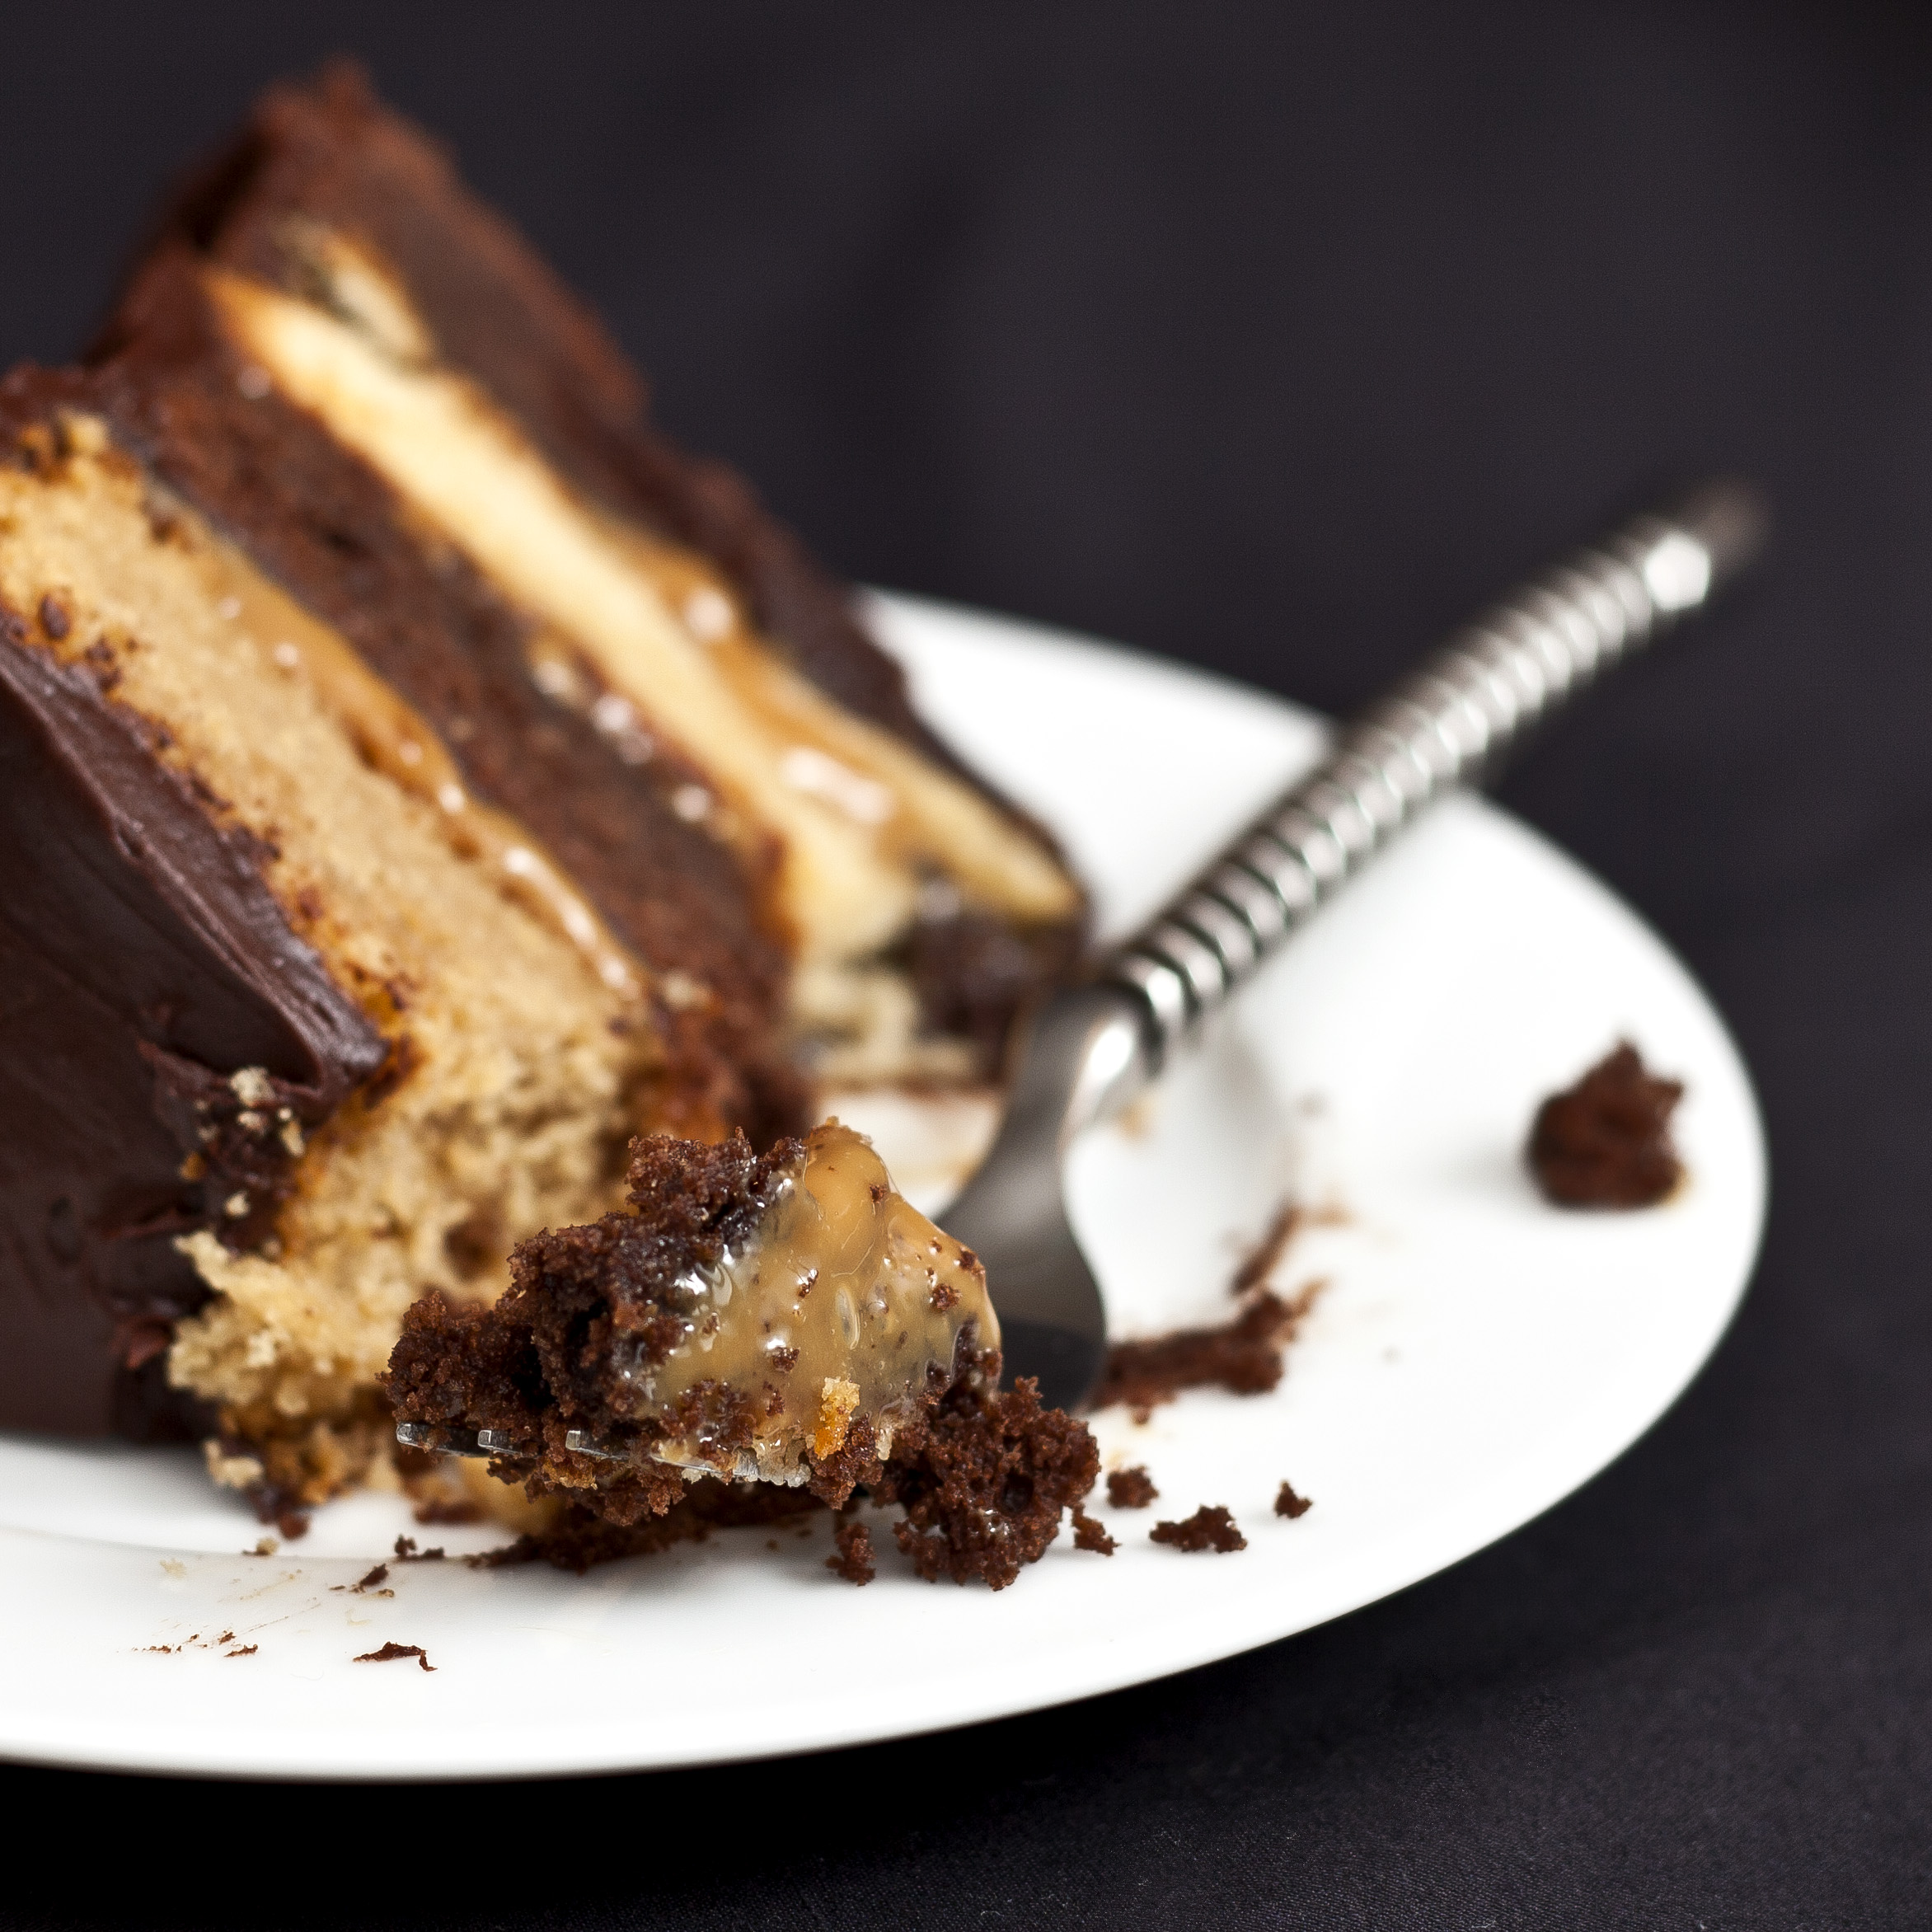 Chocolate Caramel Layer Cake | Susan Orr Photography